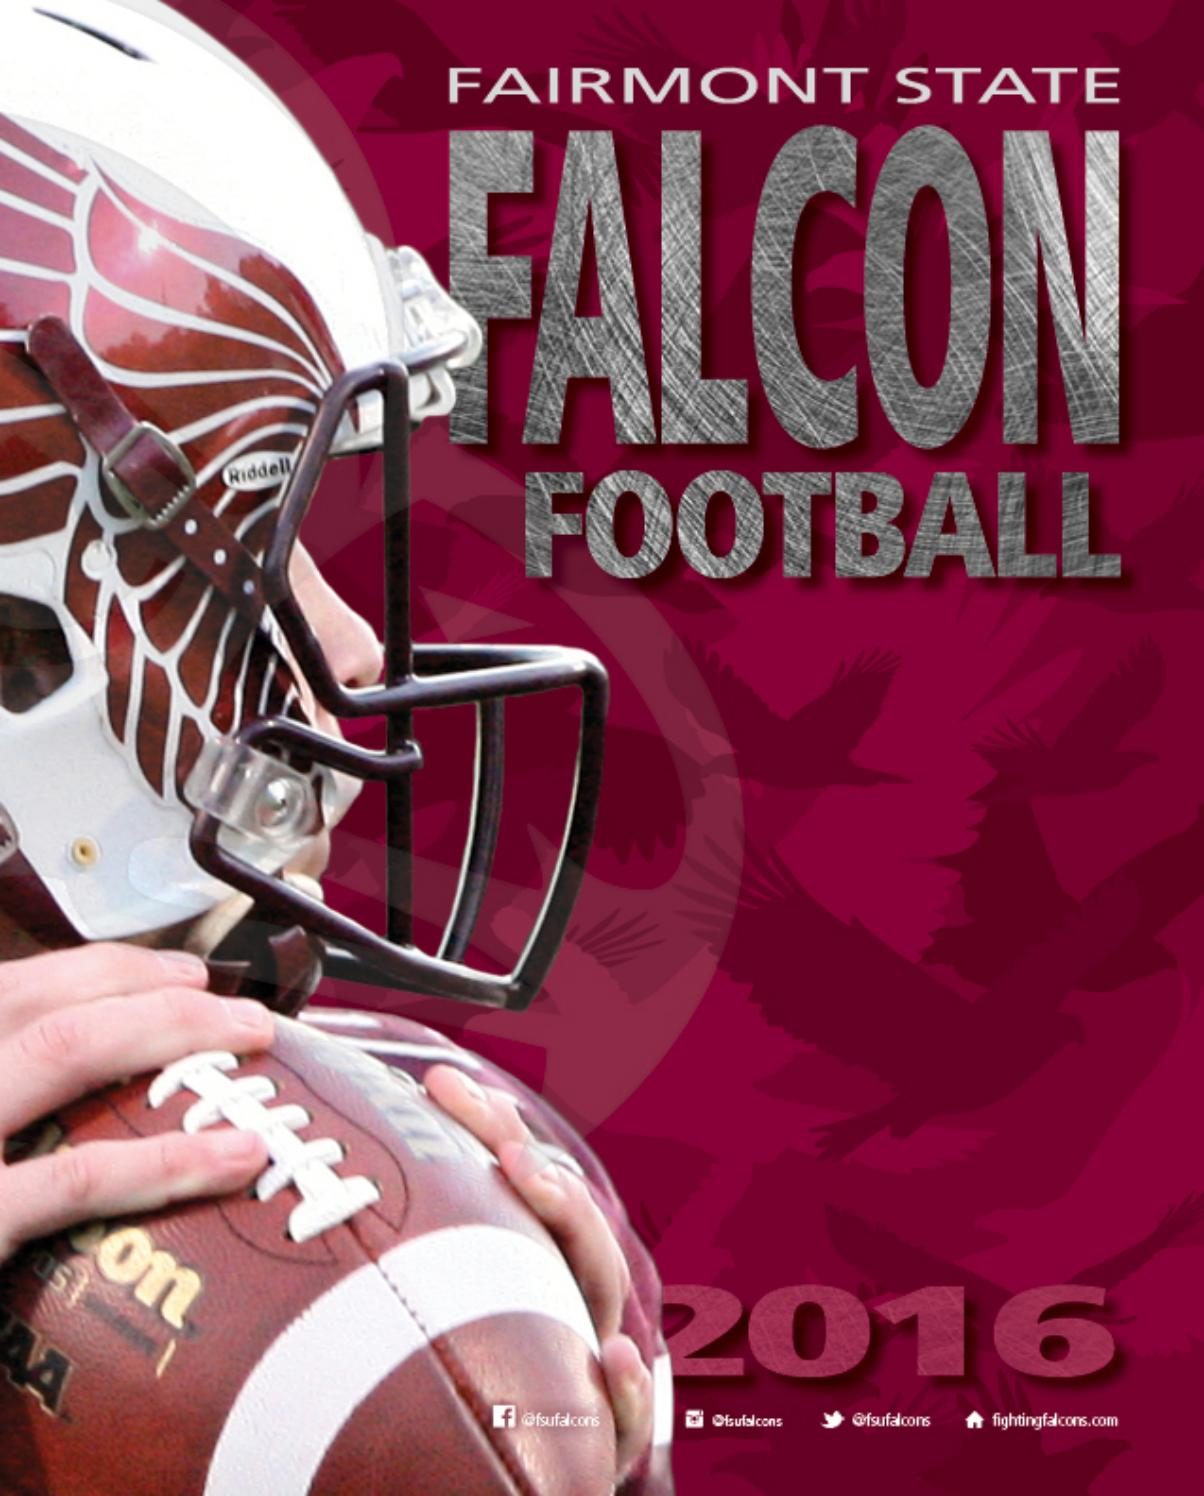 2016 Fairmont State Football Media Guide By Fairmont State